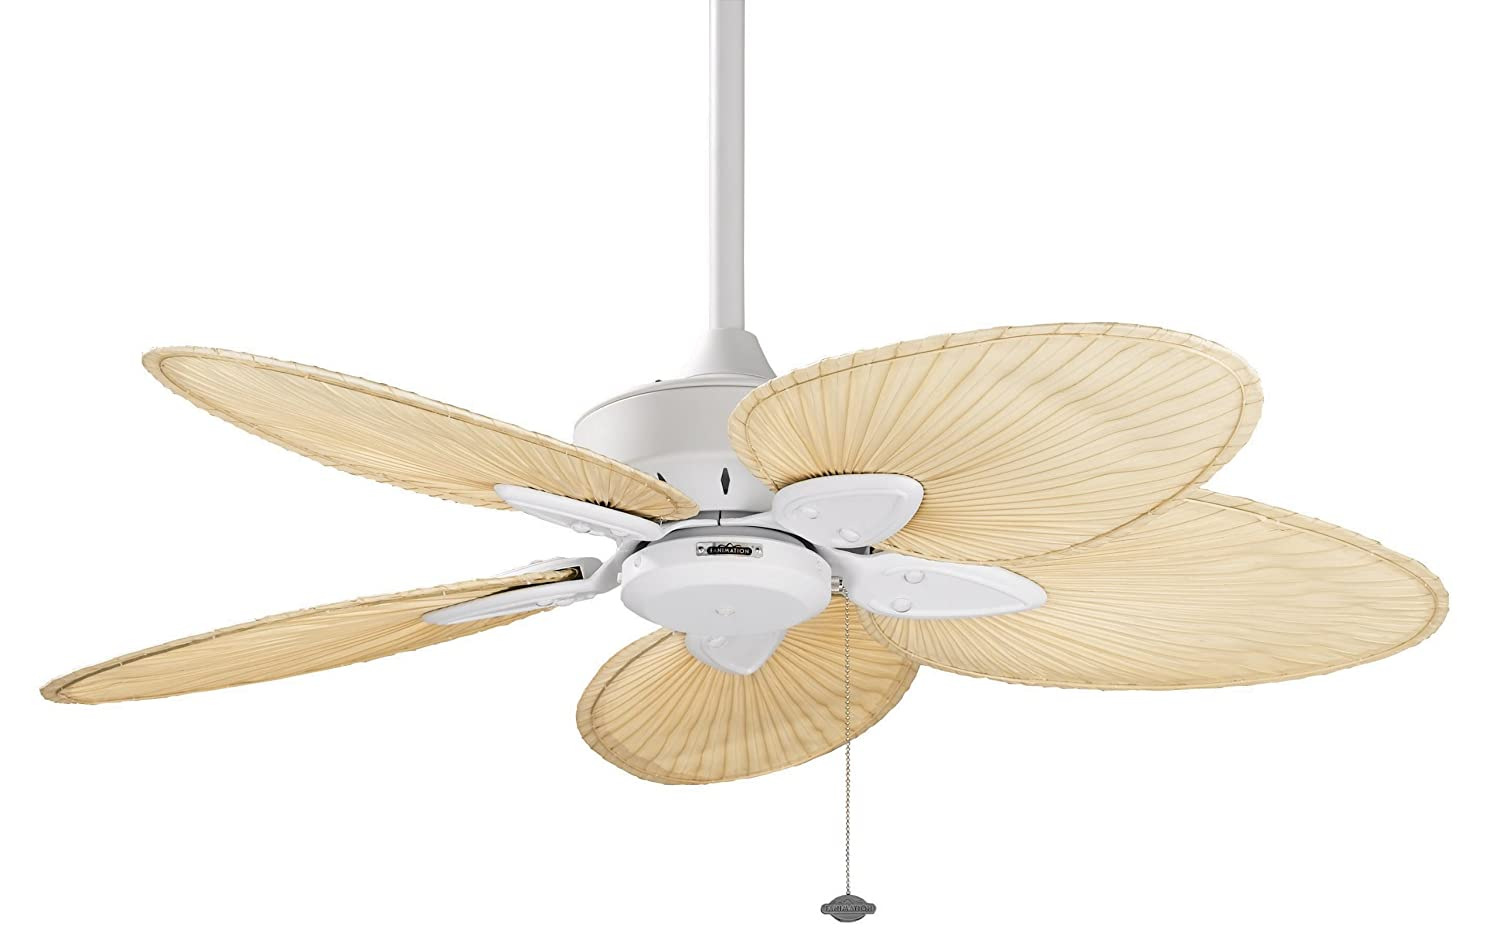 Fanimation windpointe 22 inch matte white with natural palm fanimation windpointe 22 inch matte white with natural palm narrow oval blades with pull chain fp7500mw celing fans with leaves amazon mozeypictures Choice Image